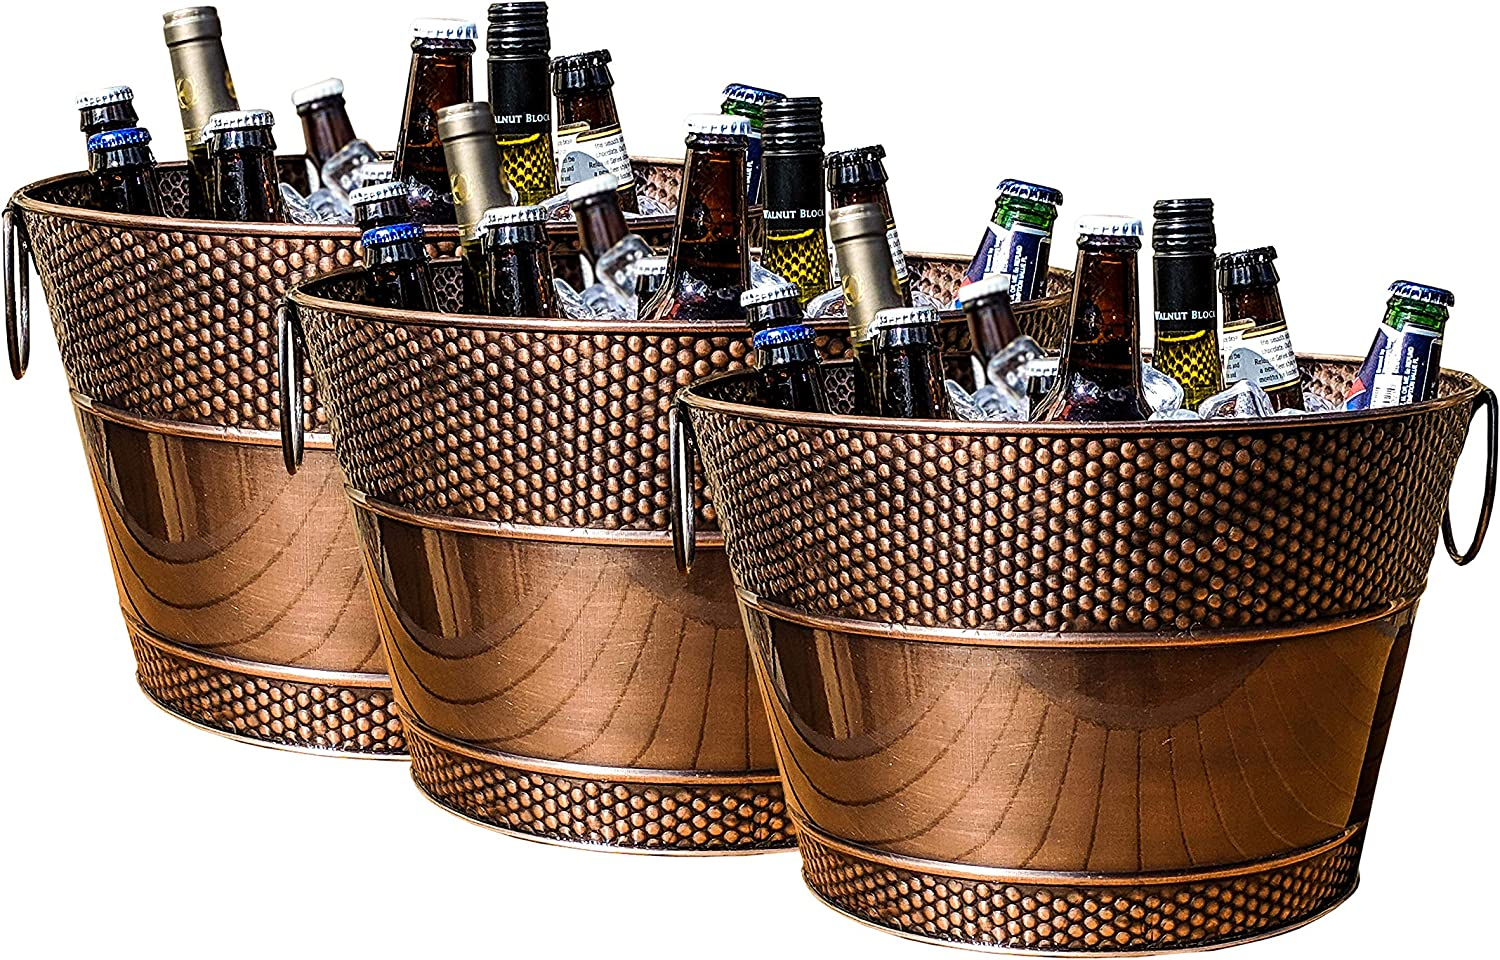 BREKX Old Tavern Copper Finish Hammered Beverage Tub and Wine Chiller, Rust-Resistant and Leak-Proof Ice and Drink Buckets, 15 Quarts, Set of 3